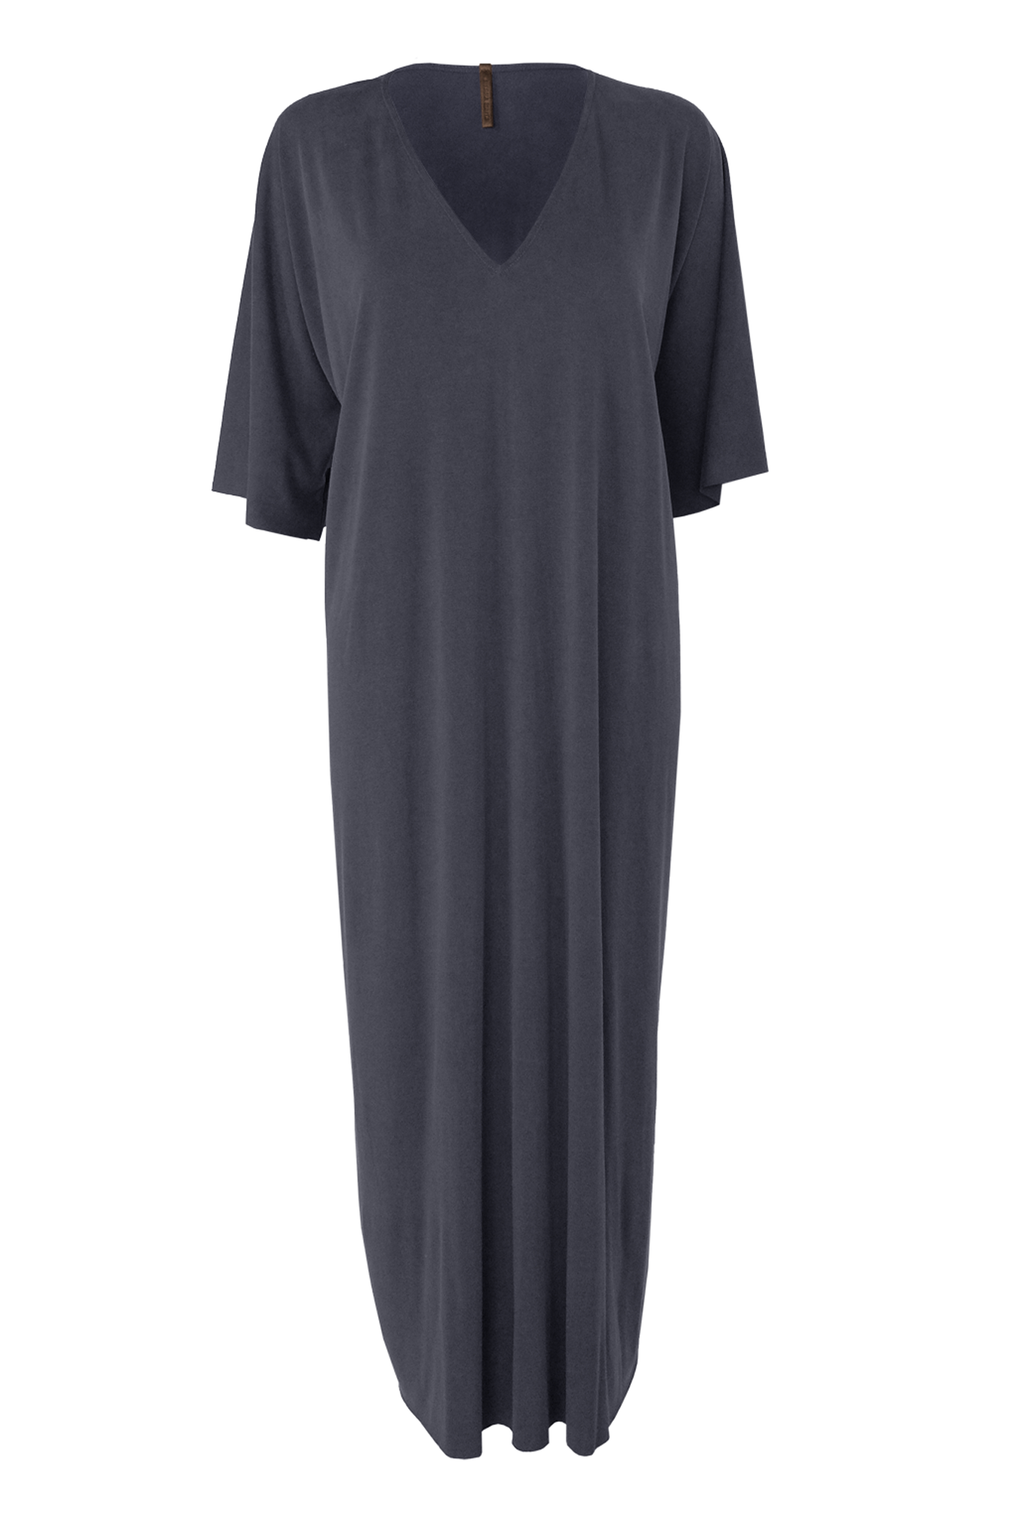 Sueded Jersey Caftan - Smoke